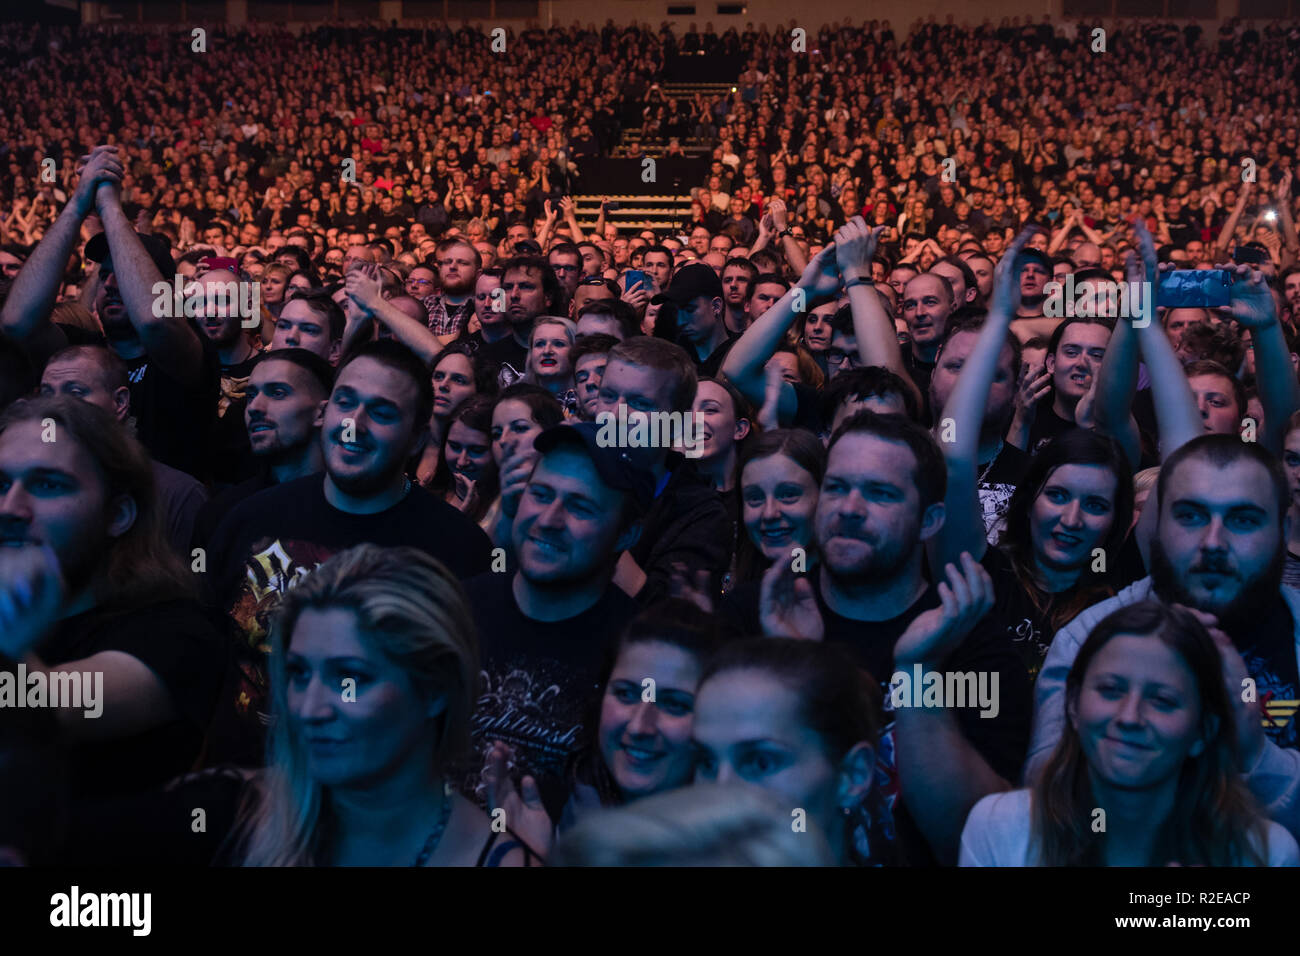 BRATISLAVA, SLOVAKIA - NOV 13, 2018: Concert goers attend a live concert with the the Finnish symphonic metal band Nightwish at the Decades: Europe 20 - Stock Image